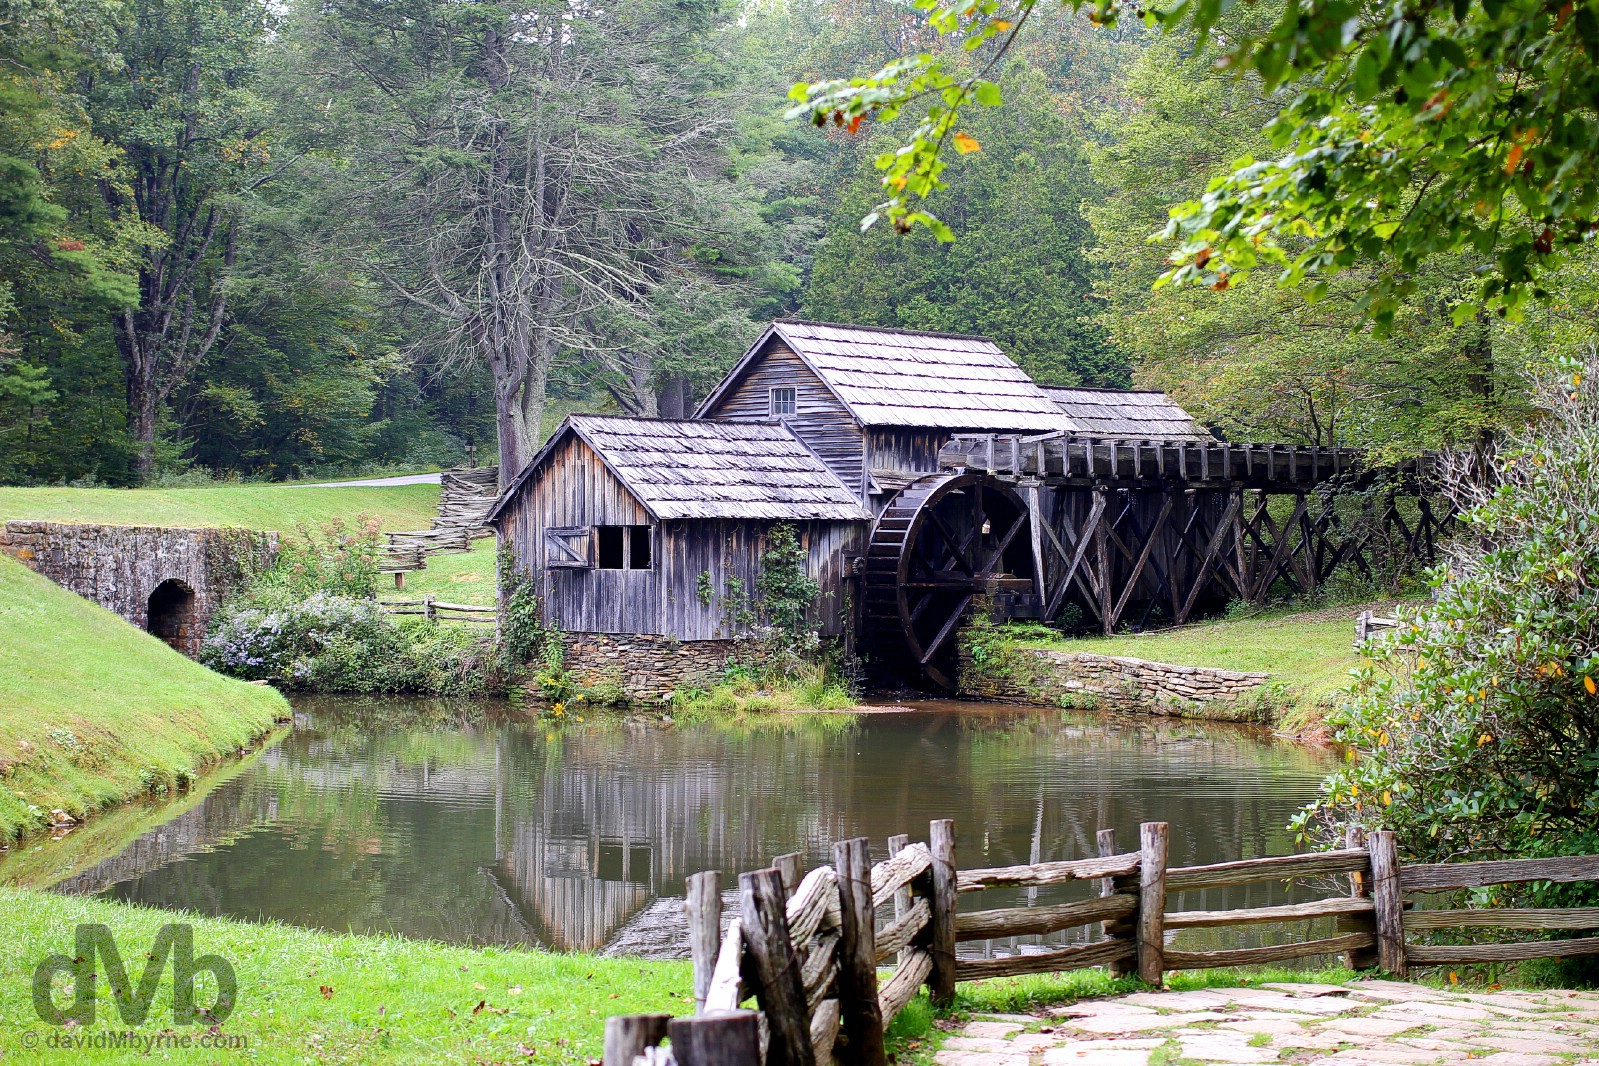 Mabry Mill of the All-American Blue Ridge Parkway in Virginia, USA. September 25, 2015.